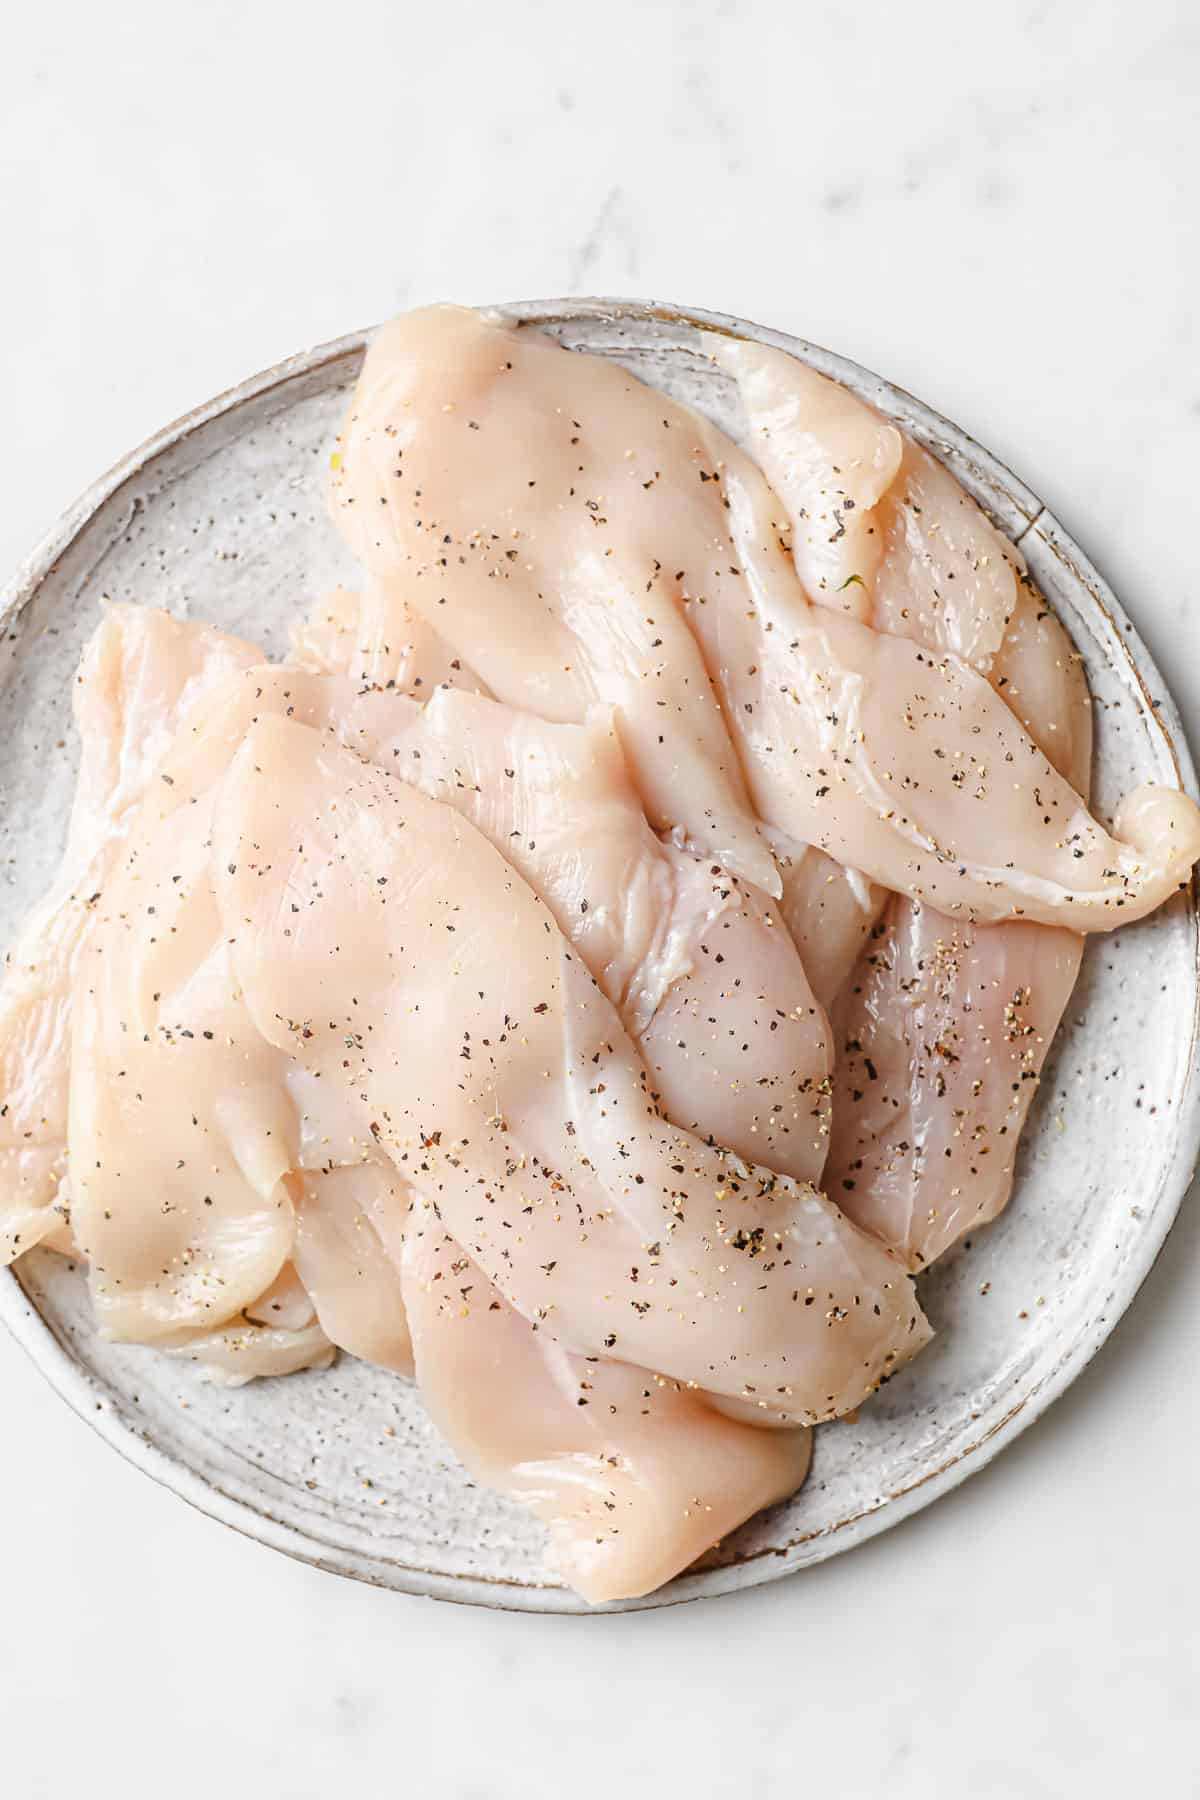 chicken breasts seasoned with salt and pepper